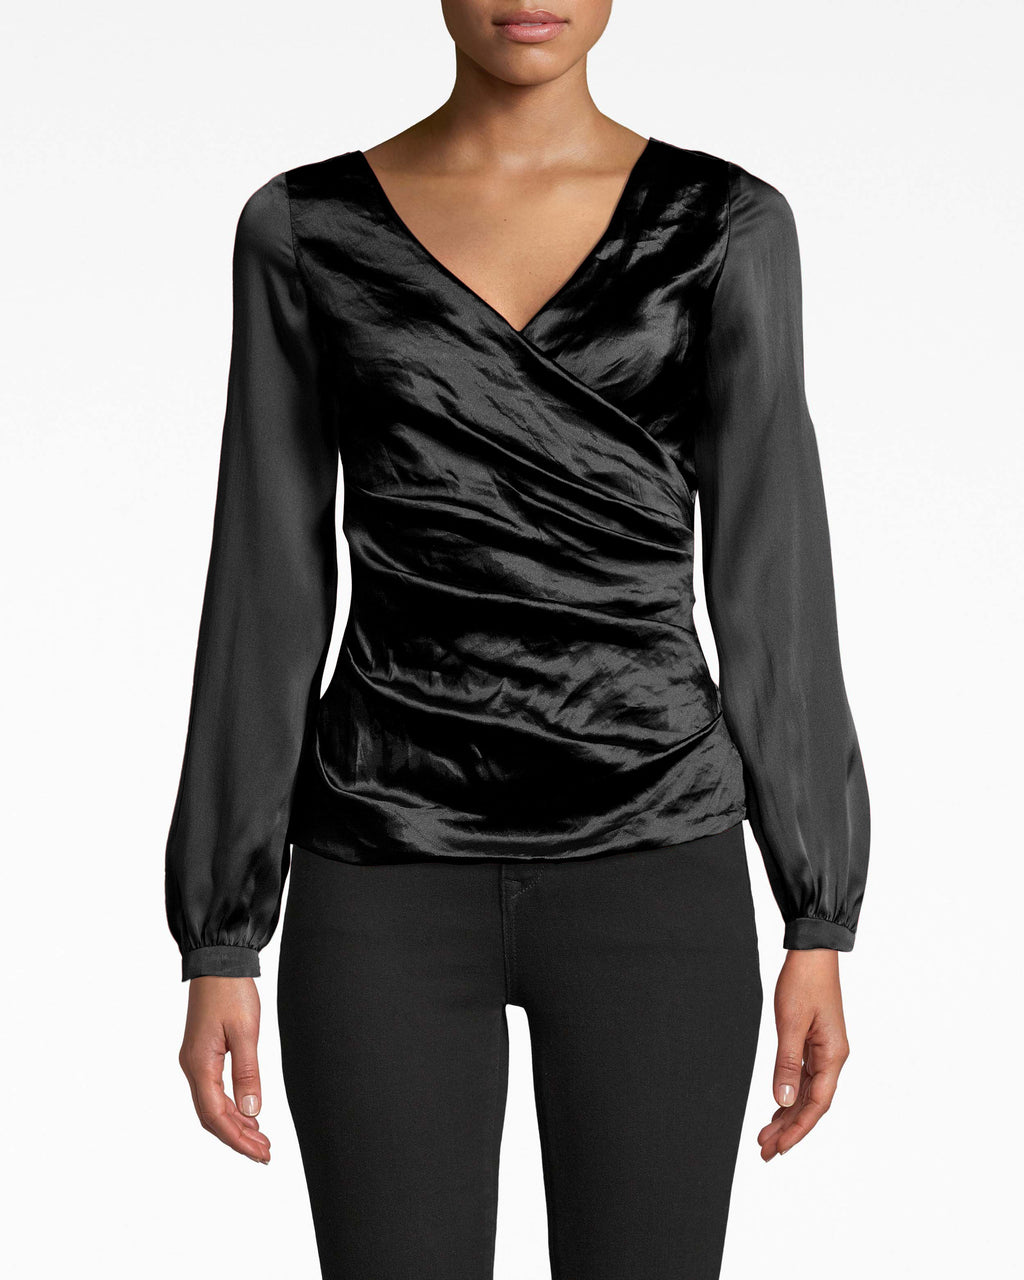 BK20042 - LONG SLEEVE TECHNO METAL COMBO TOP - tops - blouses - Chic balloon sleeves look darling with this combo top's Techno Metal bodice. The v-neck leads eyes toward the wrapped fabric waist. Exposed back zipper for closure.